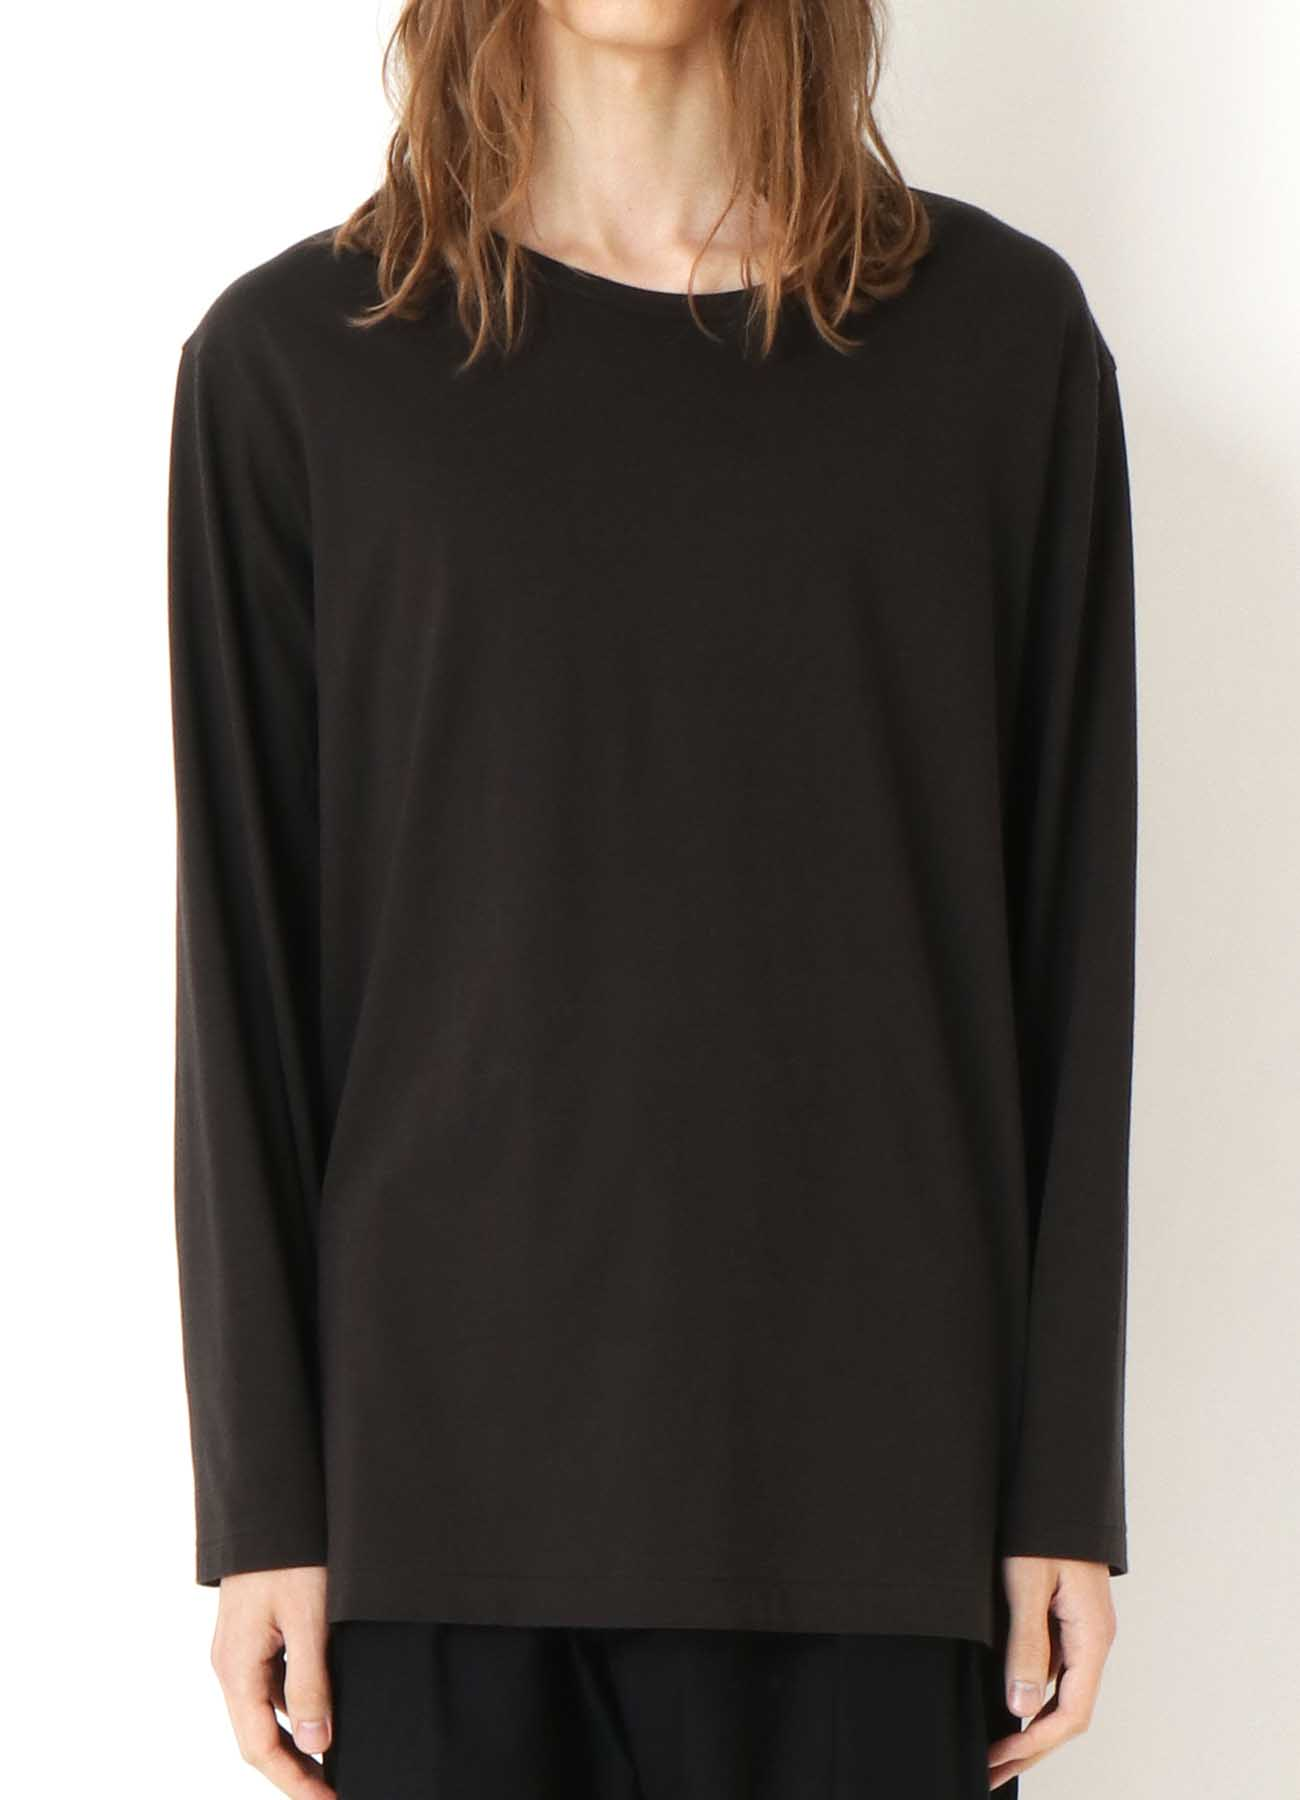 ULTIMA PLAIN STITCH CLASSIC ROUND NECK LONG SLEEVES